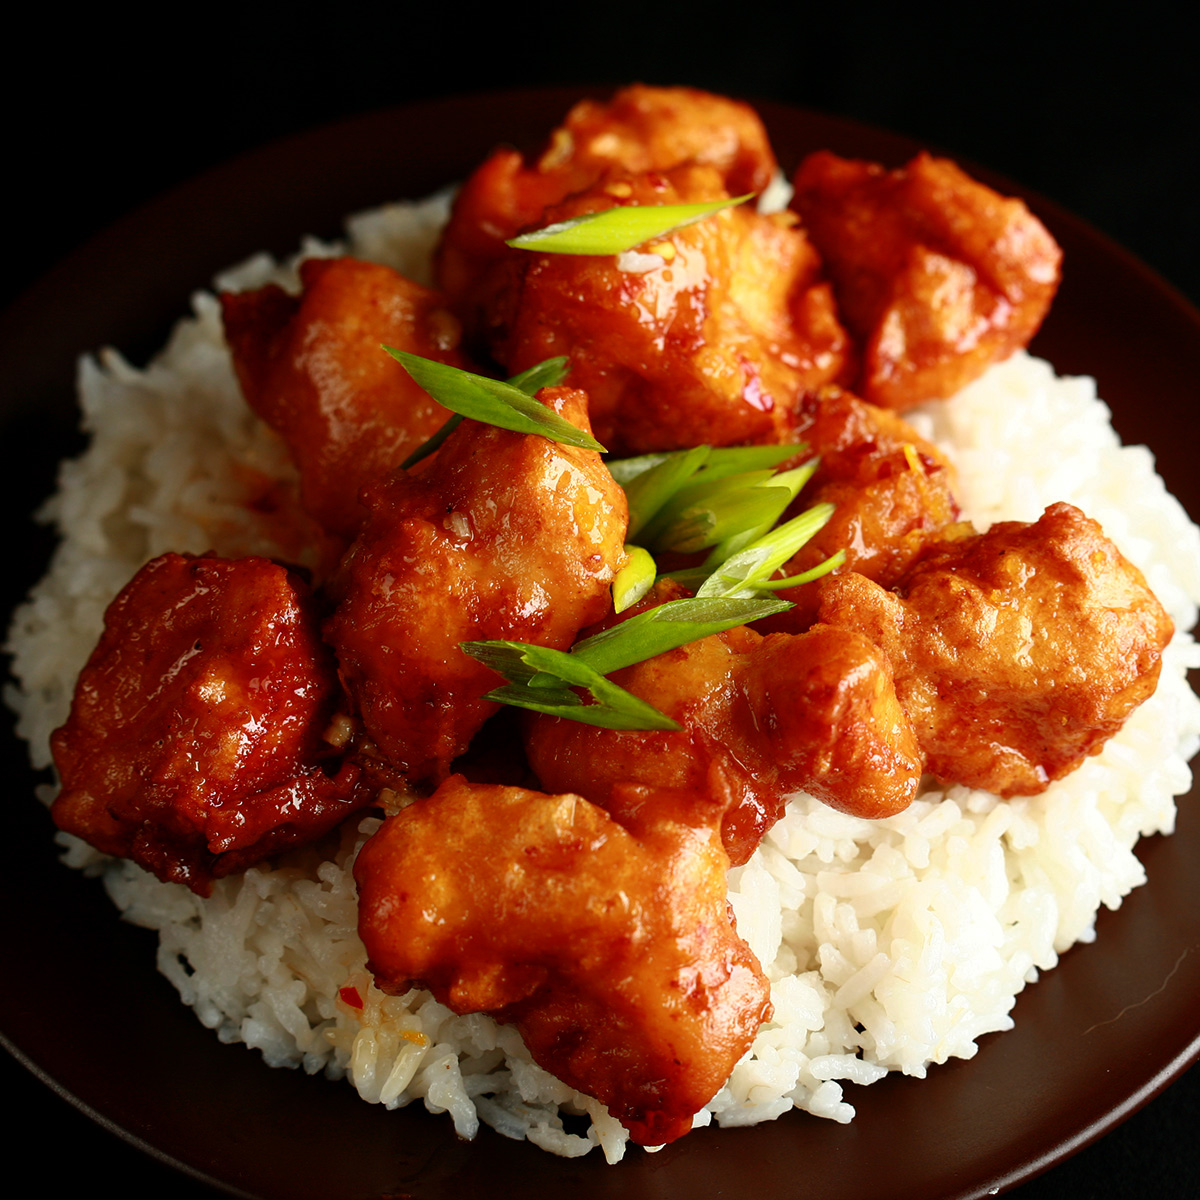 A plate of rice, covered with gluten-free orange chicken: Chunks of battered and deep fried chicken coated in a glossy orange sauce, garnished with sliced green onions